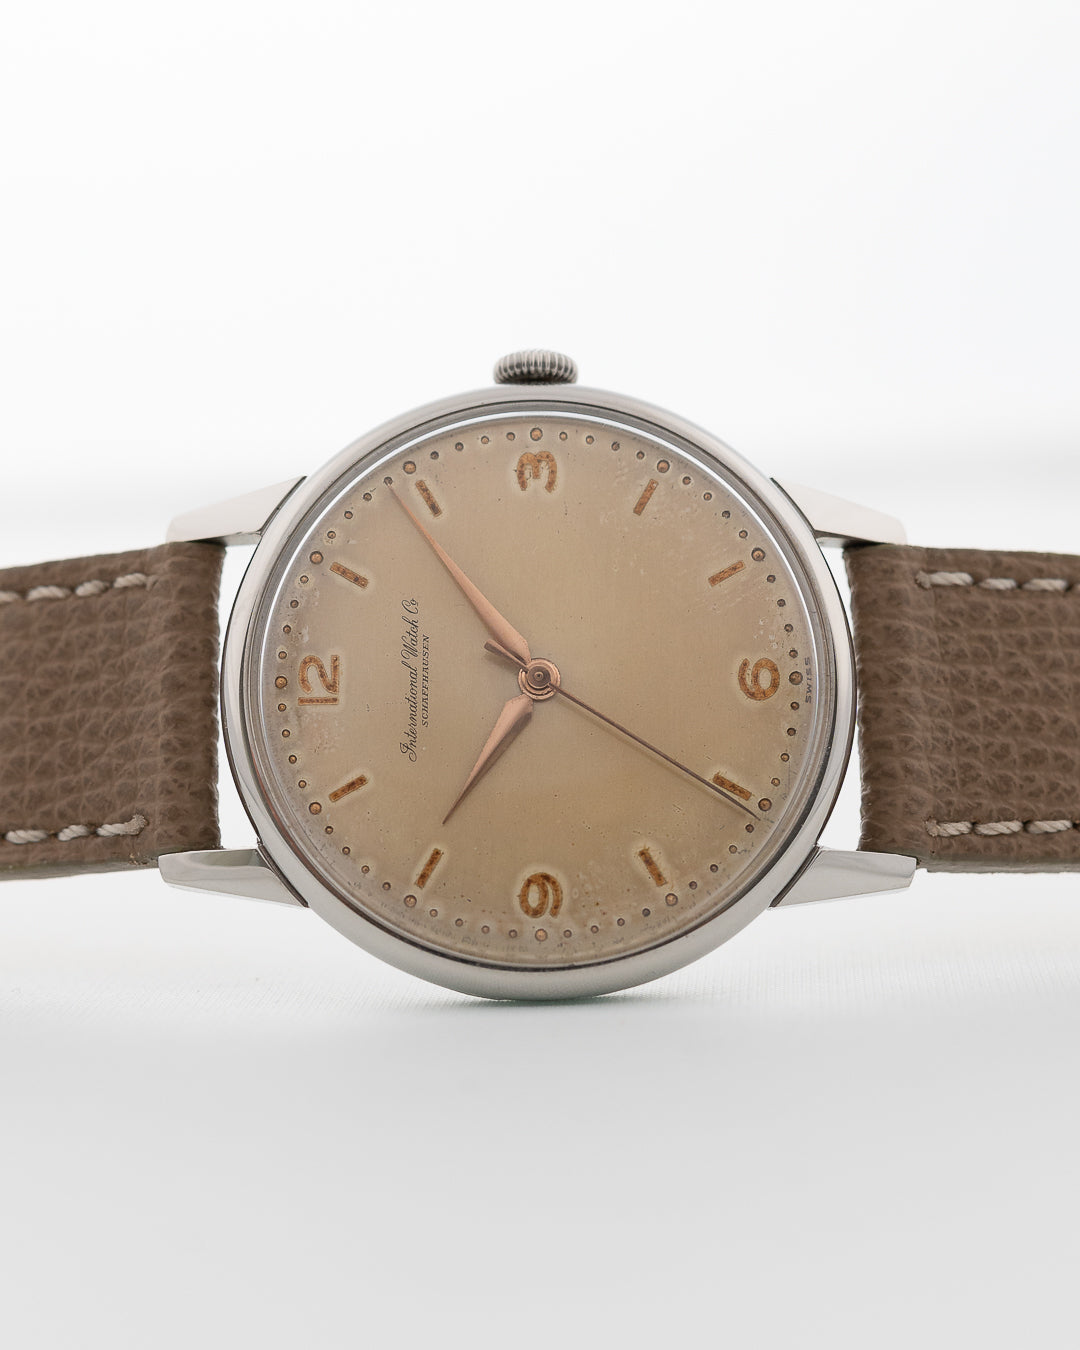 Iwc Dress Light Brown 1953 - Goldammer Vintage Watches